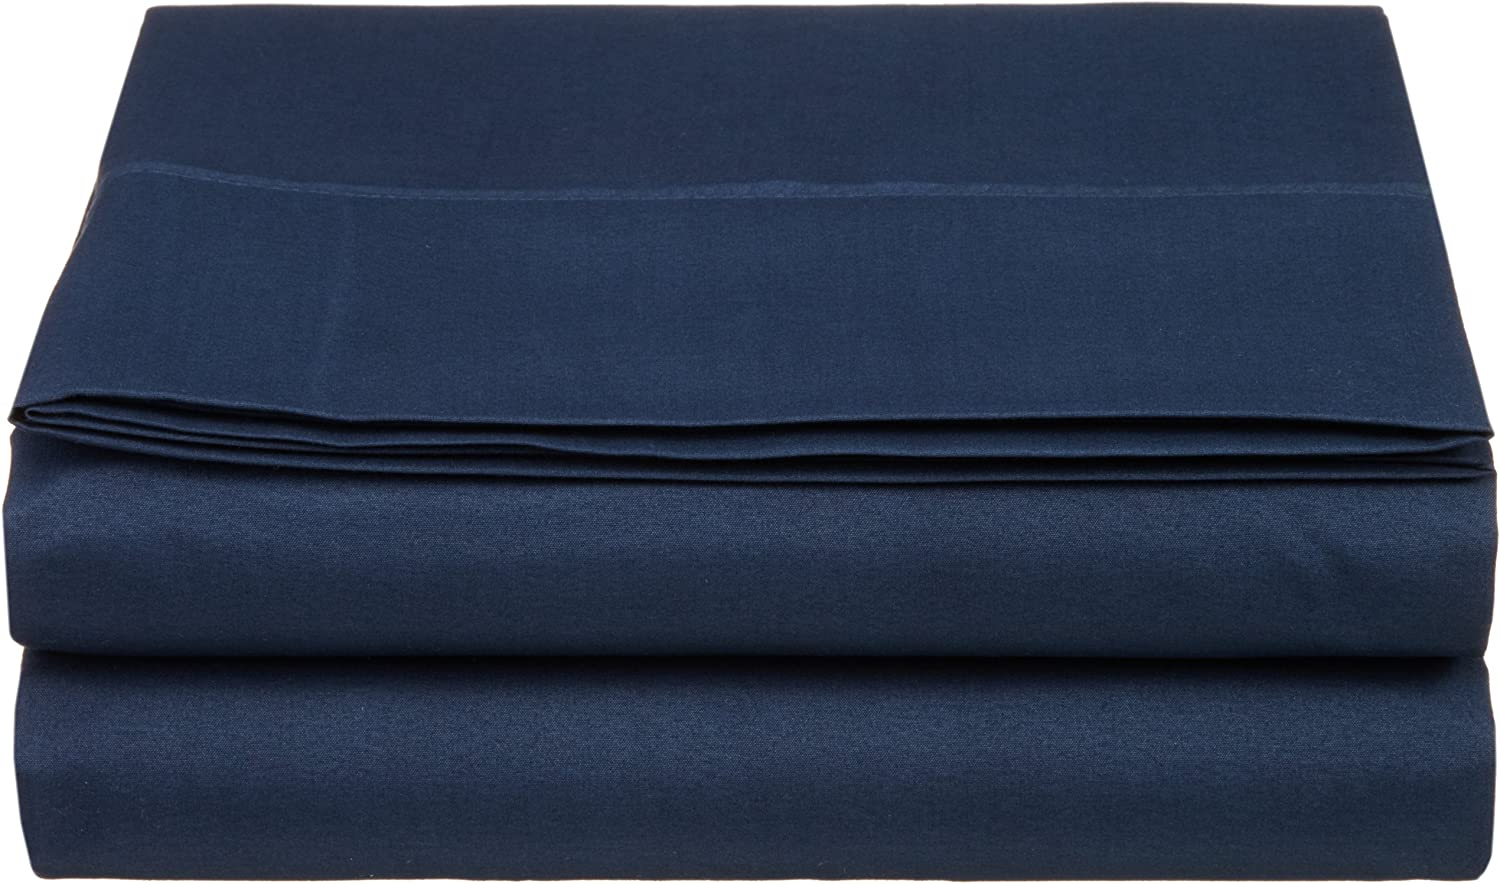 Twin Size Cathay Luxury Silky Soft Polyester Single Flat Sheet Camel